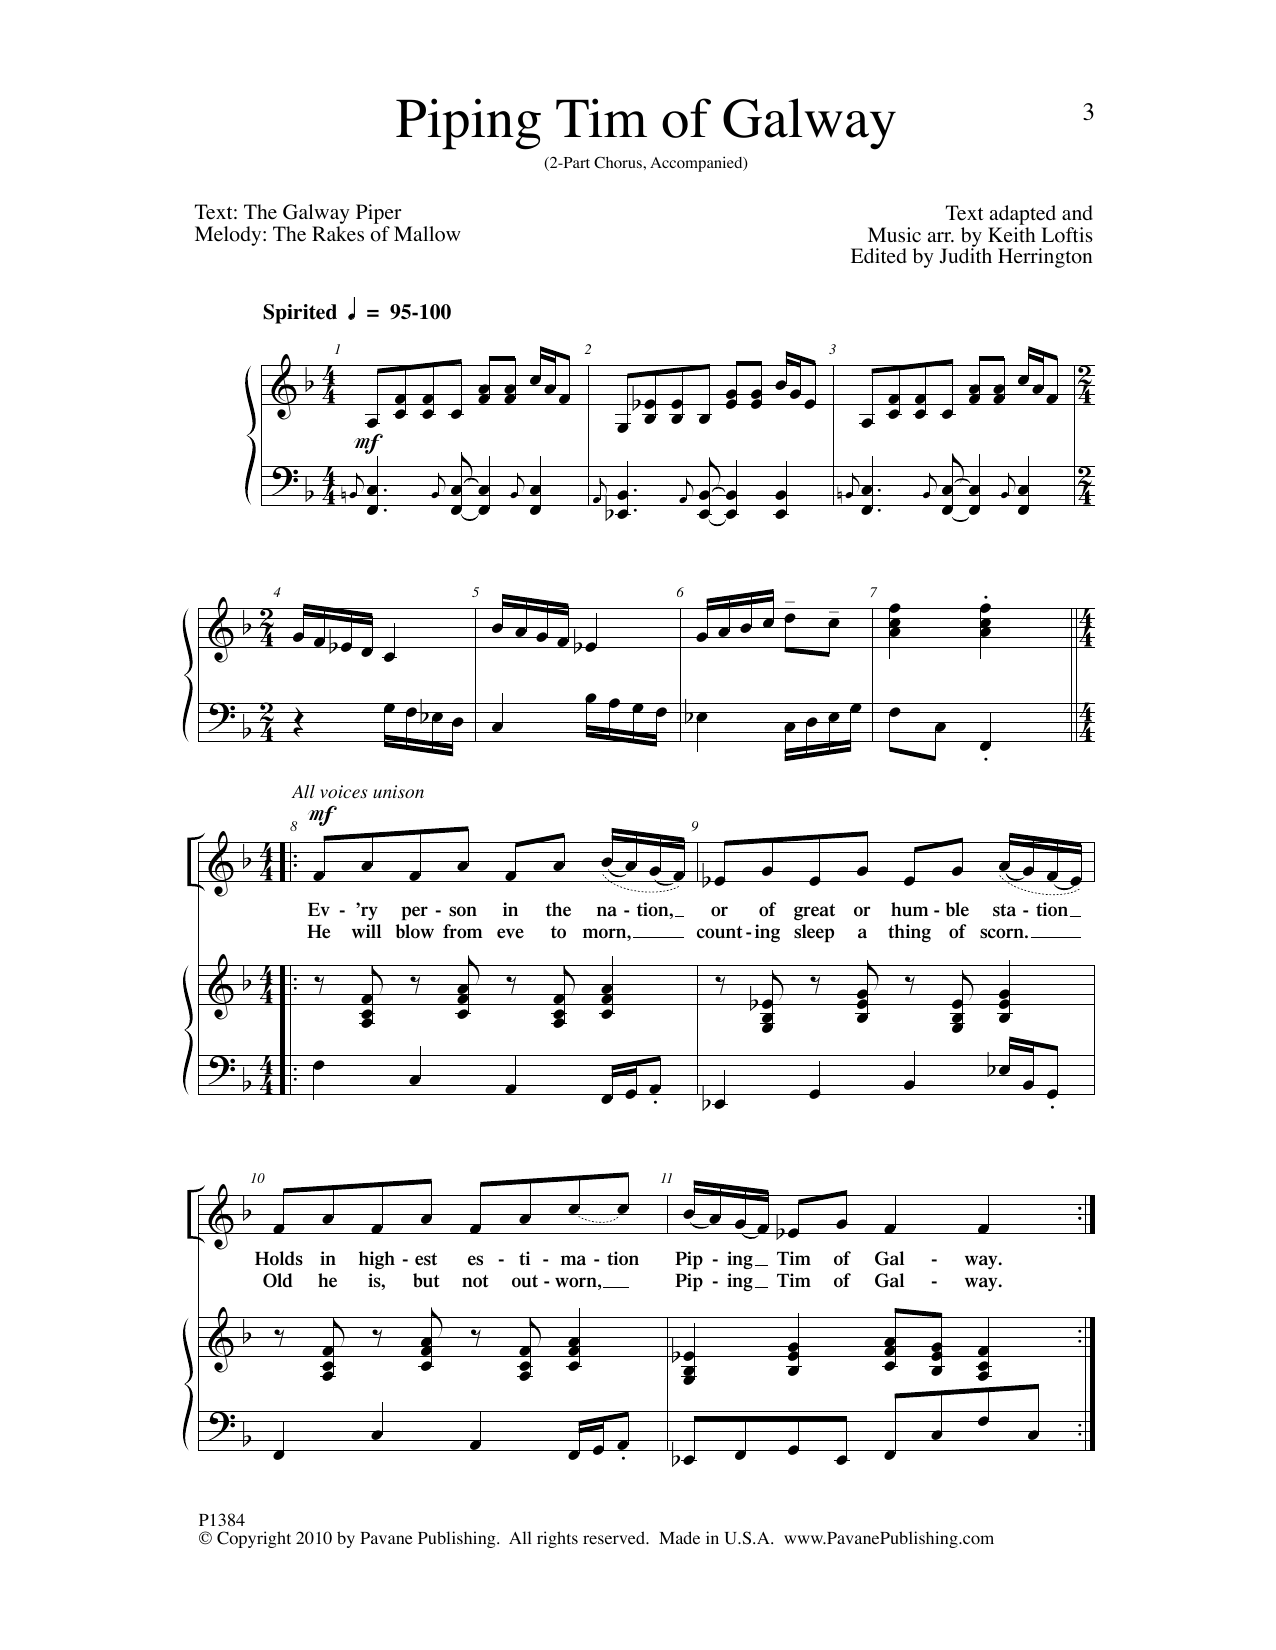 Keith Loftis Piping Tim of Galway sheet music notes and chords. Download Printable PDF.